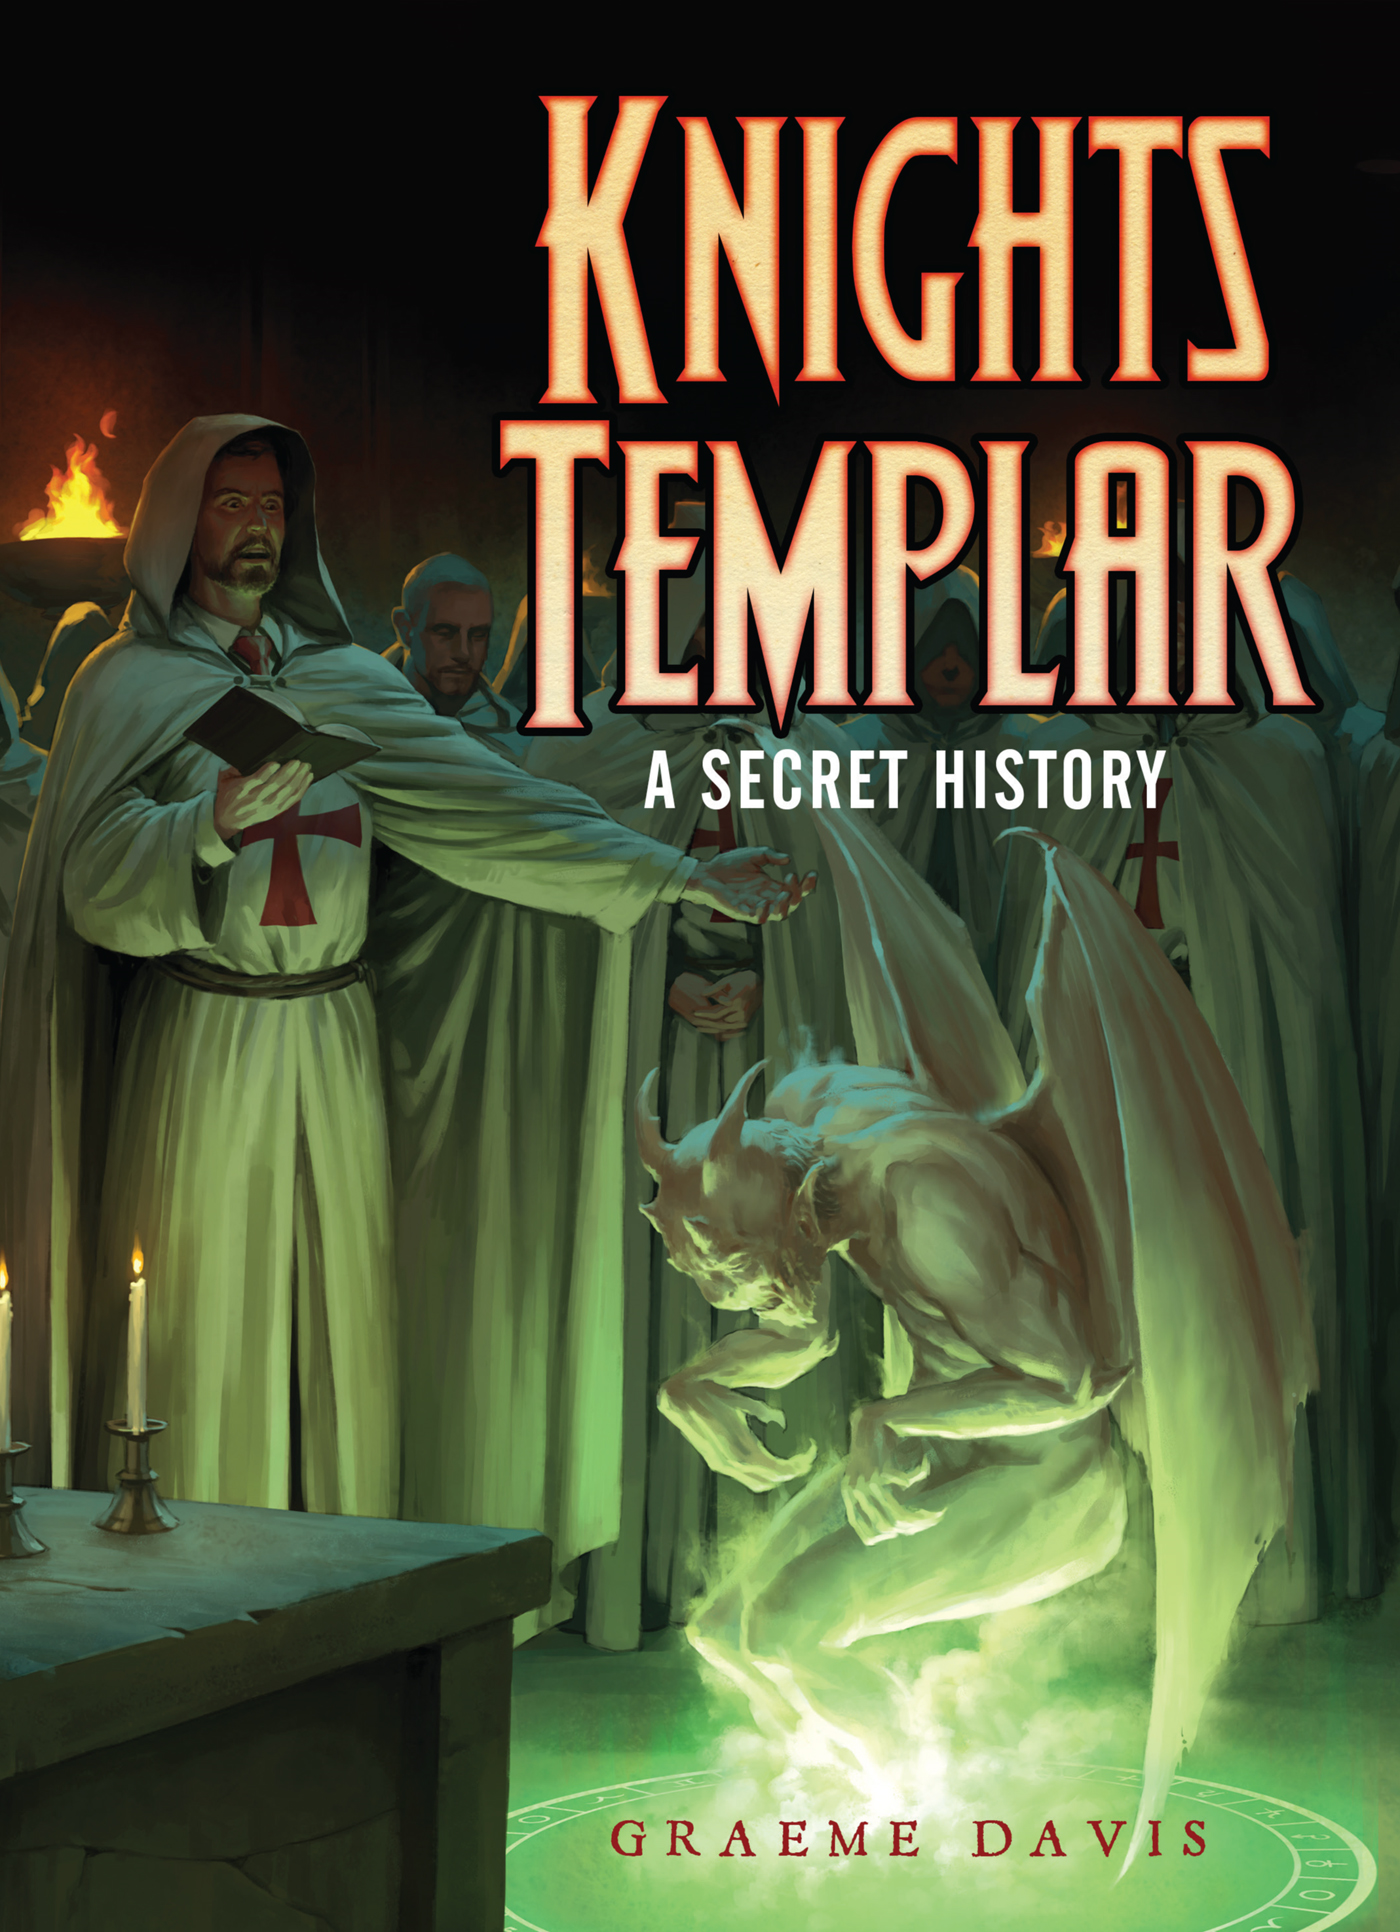 The Knights Templar: A Secret History